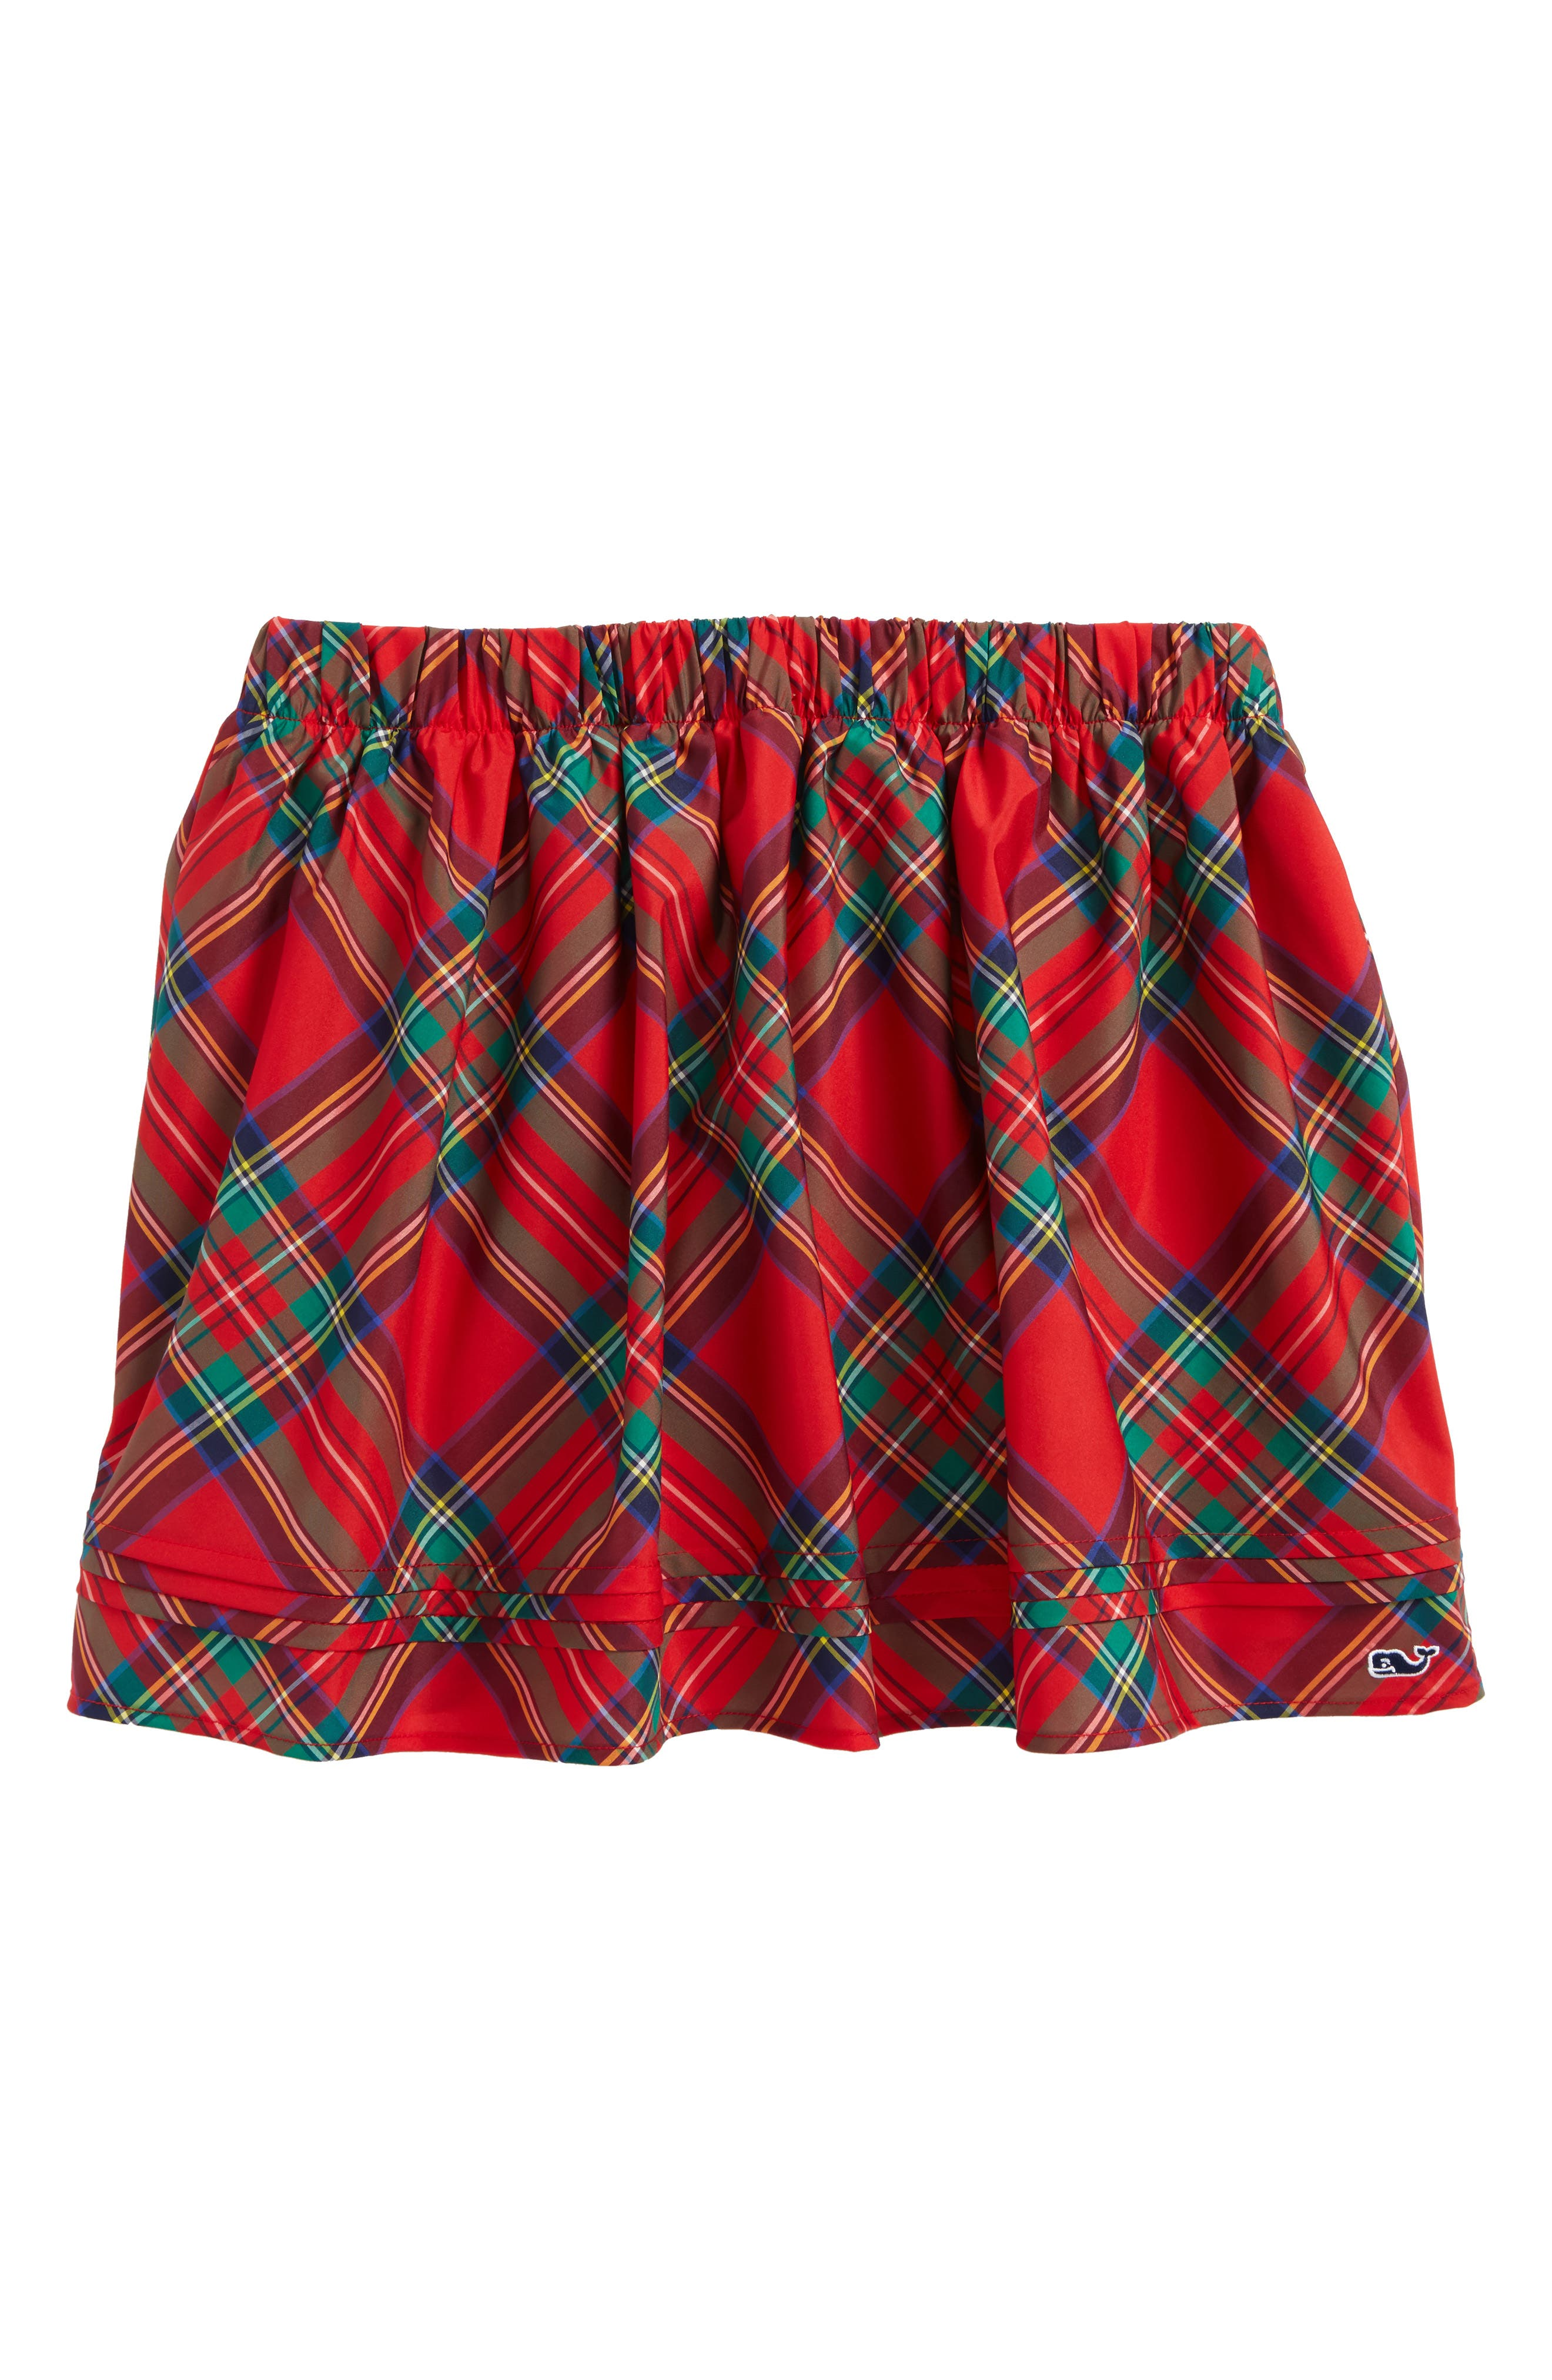 Jolly Plaid Holiday Skirt,                         Main,                         color,